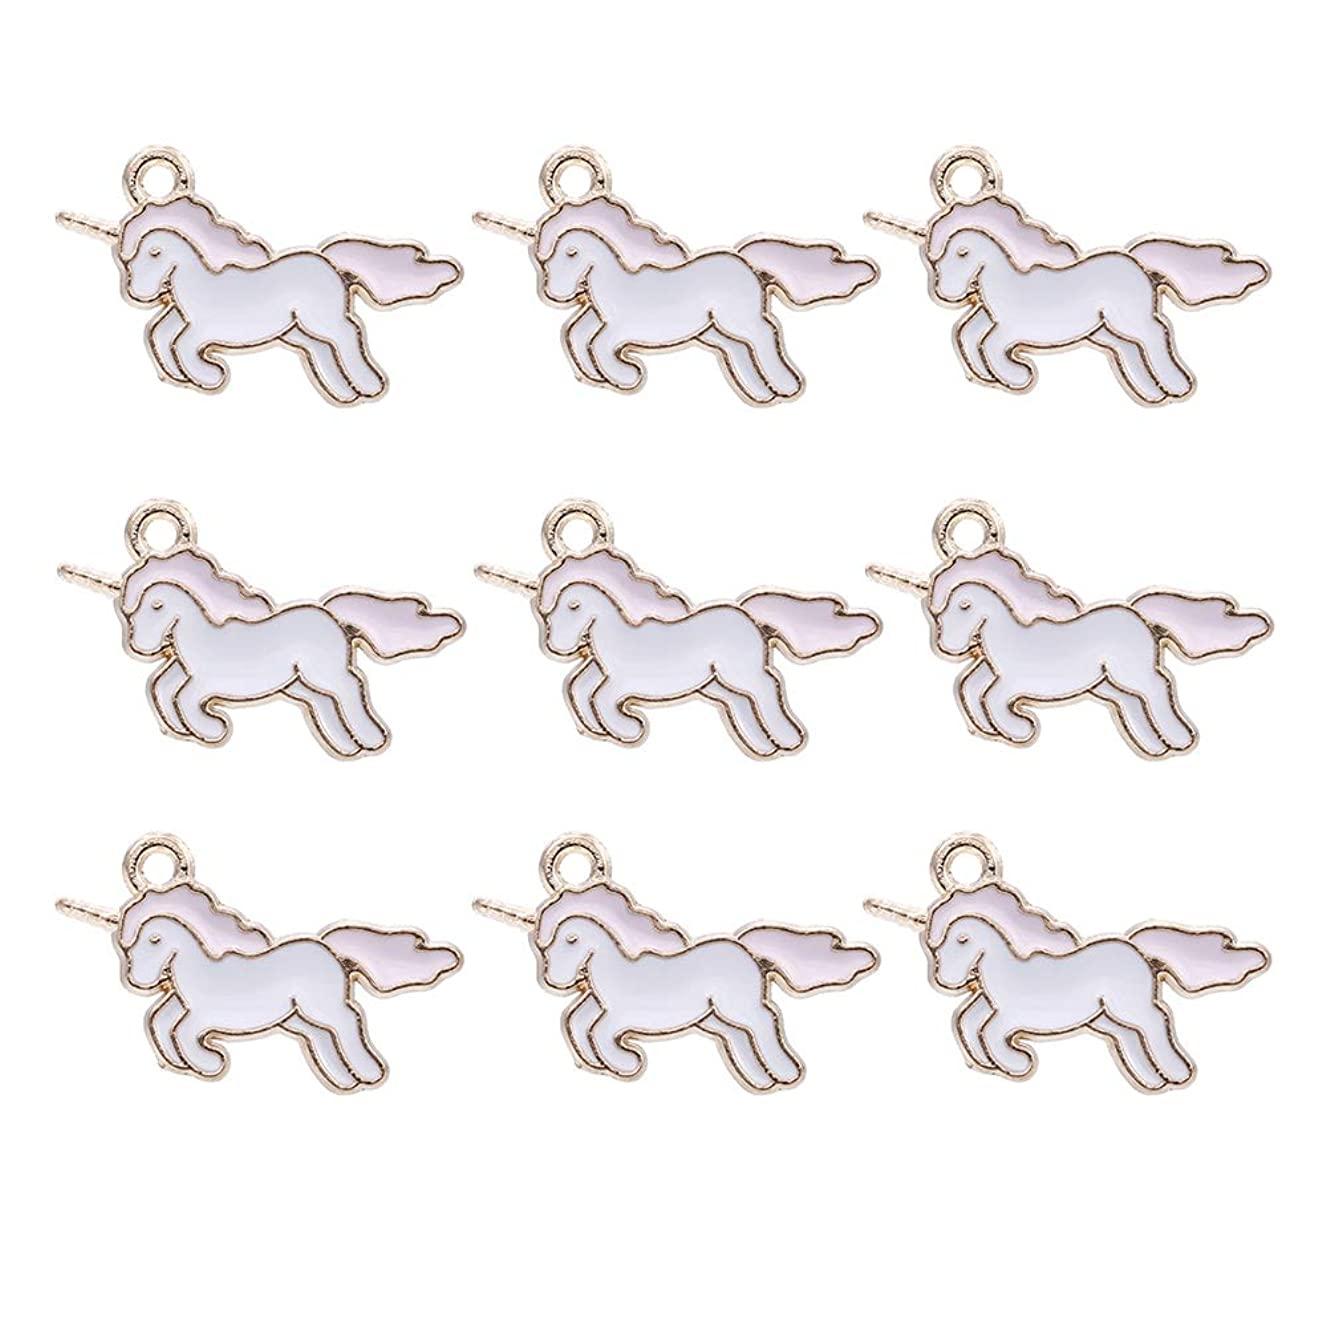 50pcs Gold Plated Cute Mini Charms Enamel Unicorn Pendants for DIY Jewelry Making Necklace Bracelet Earring Jewelry Findings Hypoallergenic Alloy (Unicorn-Pink)